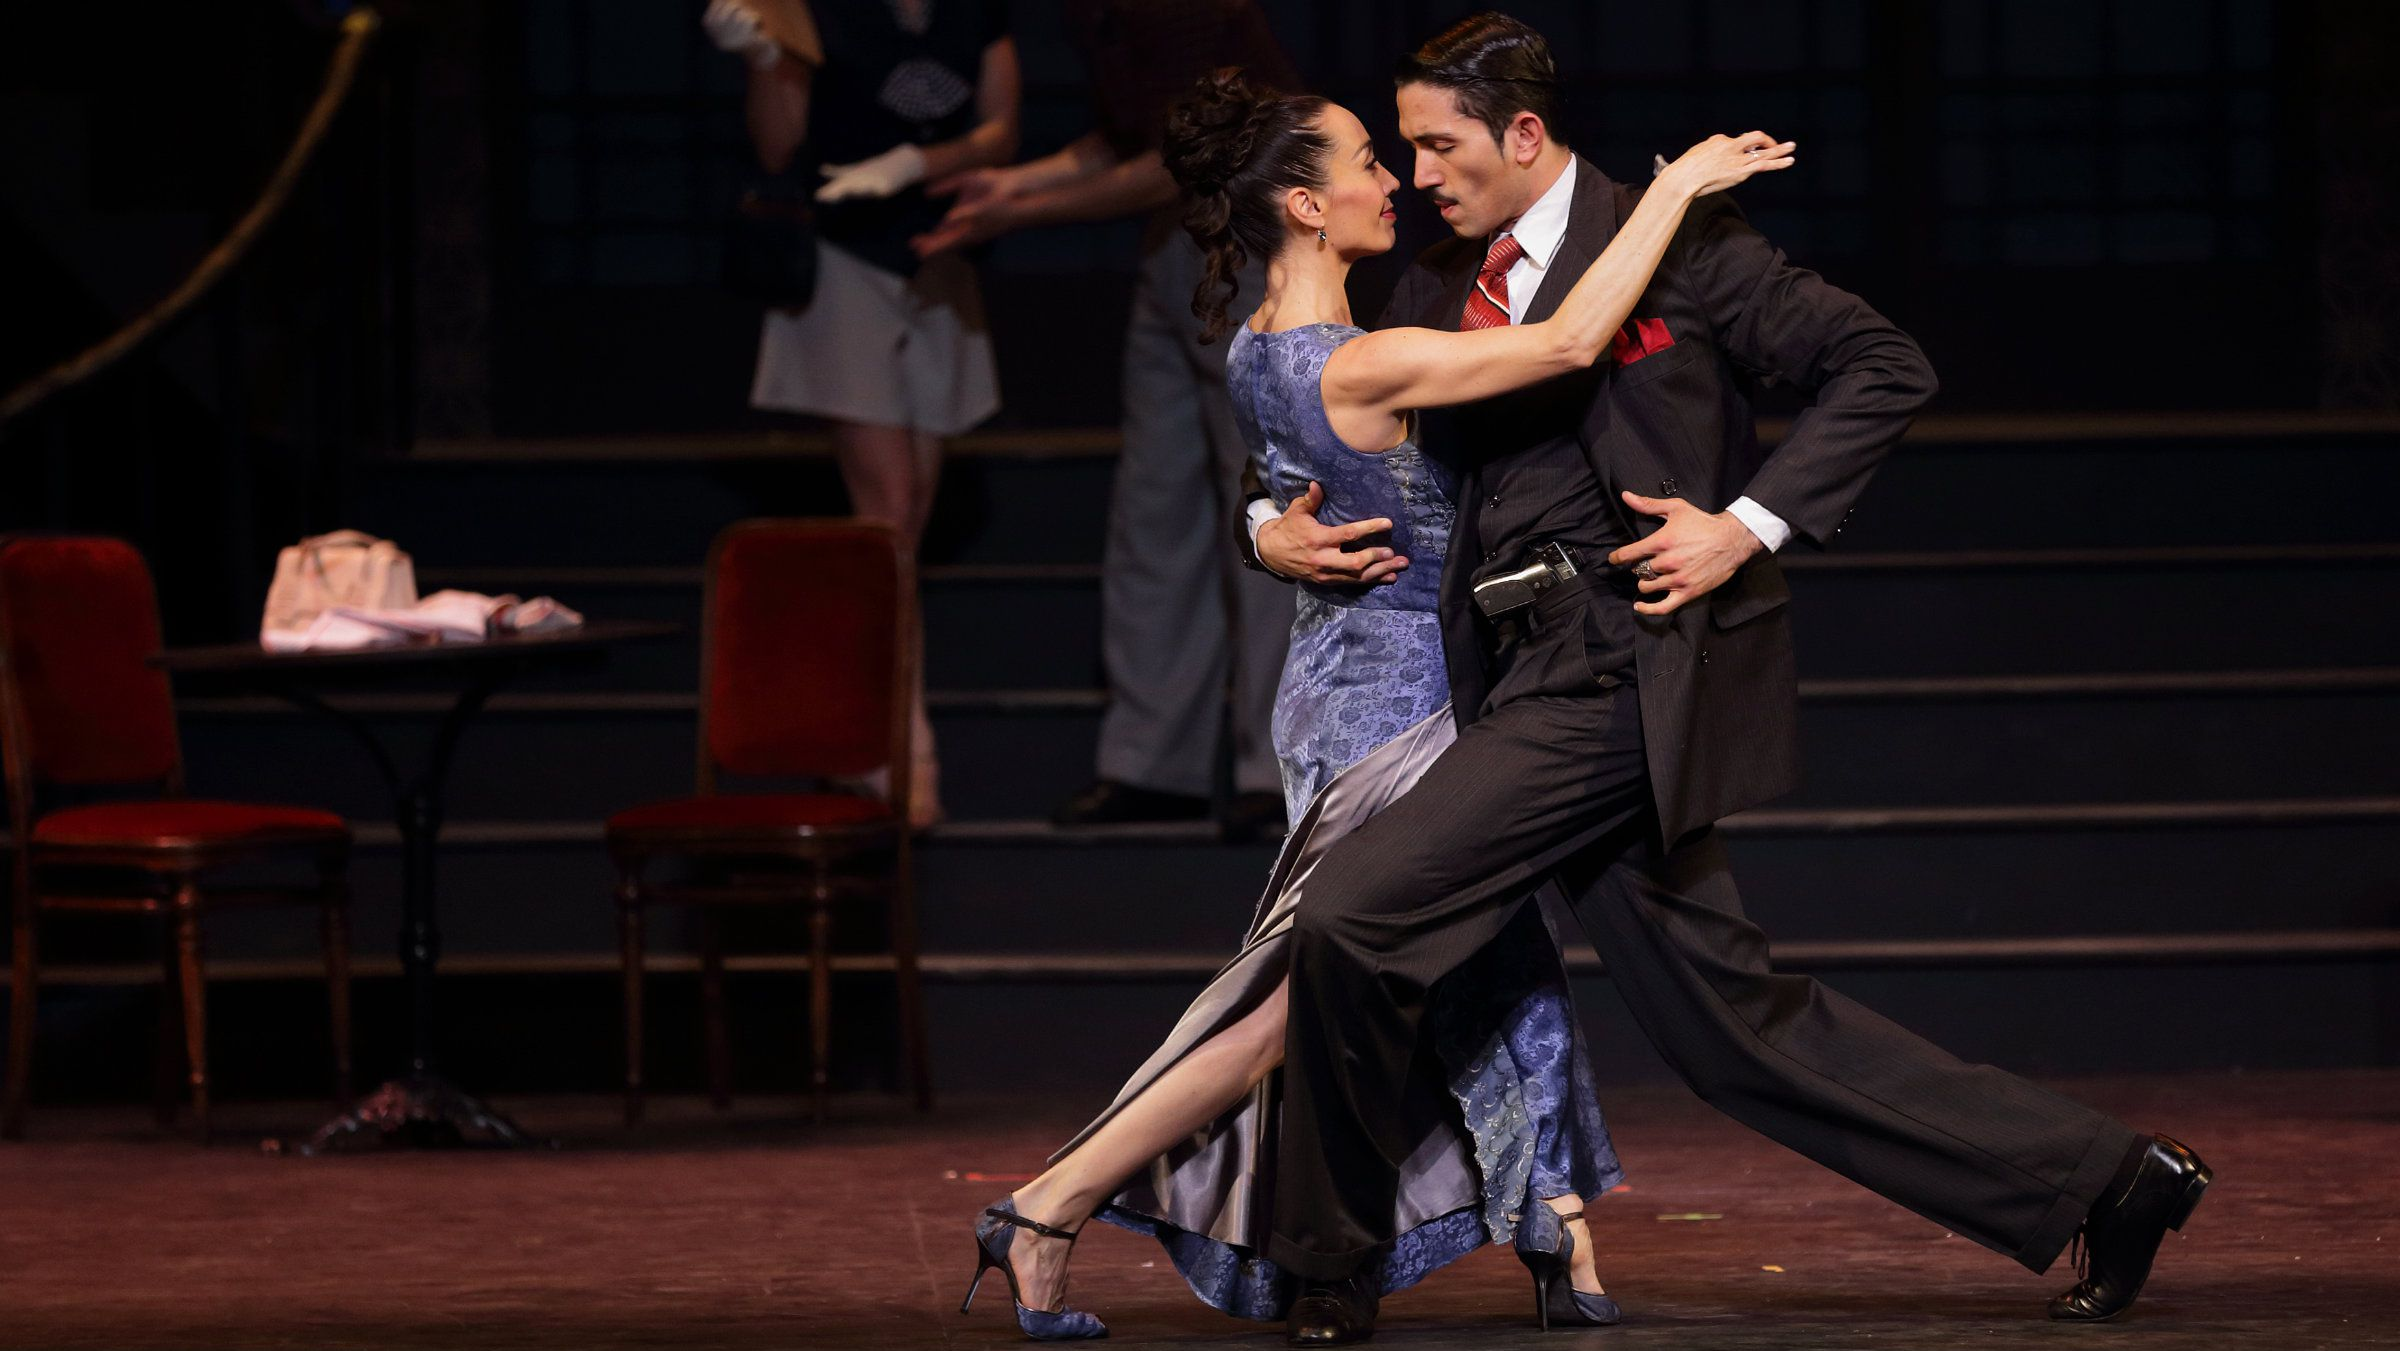 """Choreographer and dancer Mora Godoy (L) and dancer Marcos Ayala perform during a general rehearsal of the show """"Chantecler Tango"""" at the Chatelet theatre in Paris, October 8, 2013. The tango musical, dedicated to the Cabaret Chantecler, one of the legendary cabaret of Buenos Aires, will play from October 9 to November 3, 2013. Picture taken October 8, 2013. REUTERS/Philippe Wojazer"""